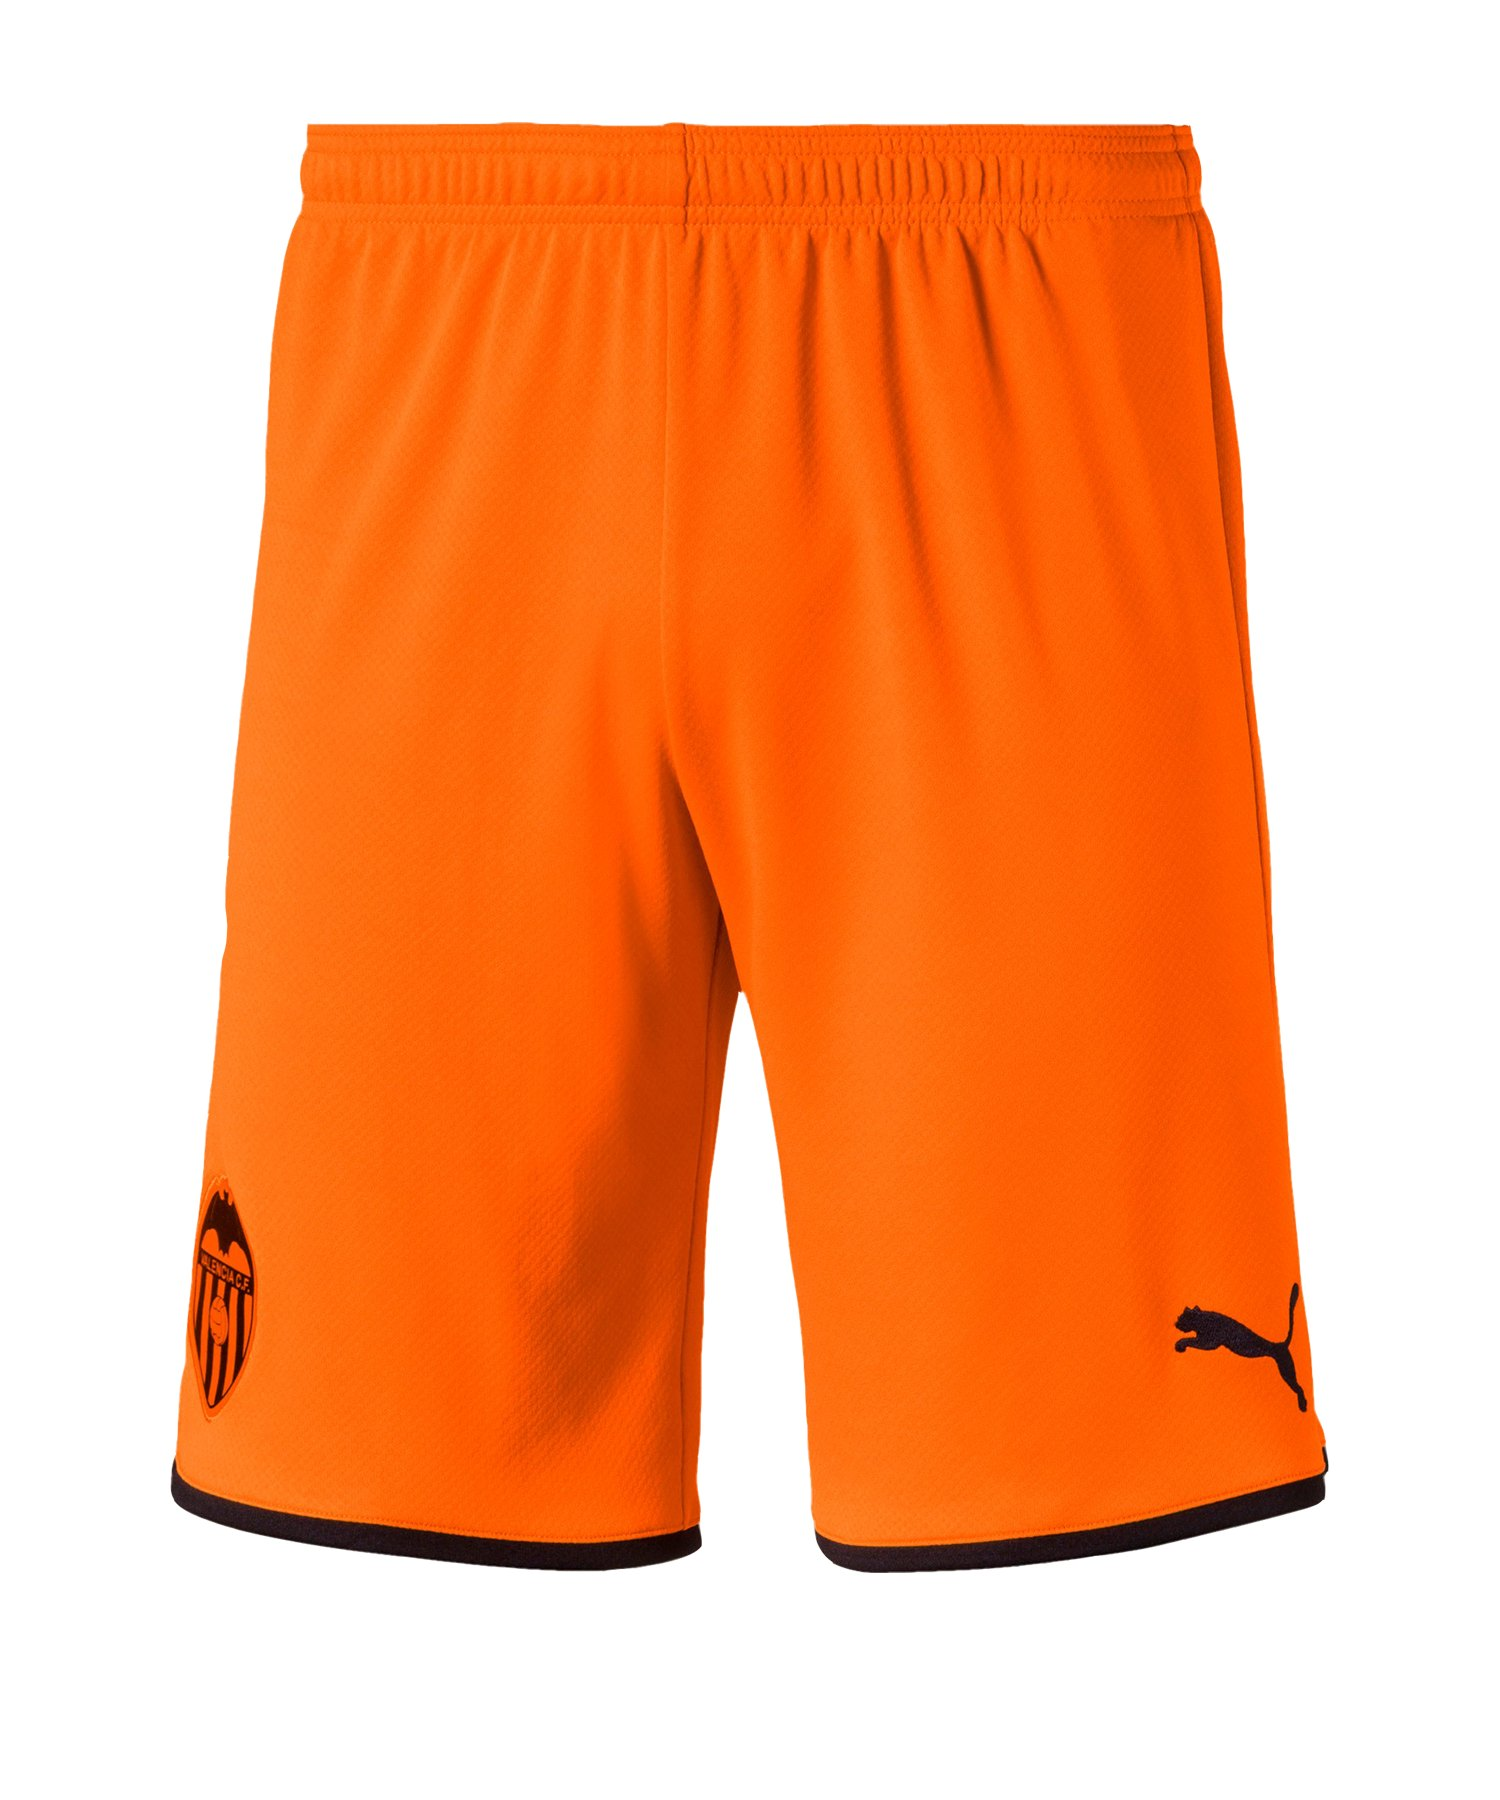 PUMA FC Valencia Short Away 2019/2020 Orange F04 - Orange